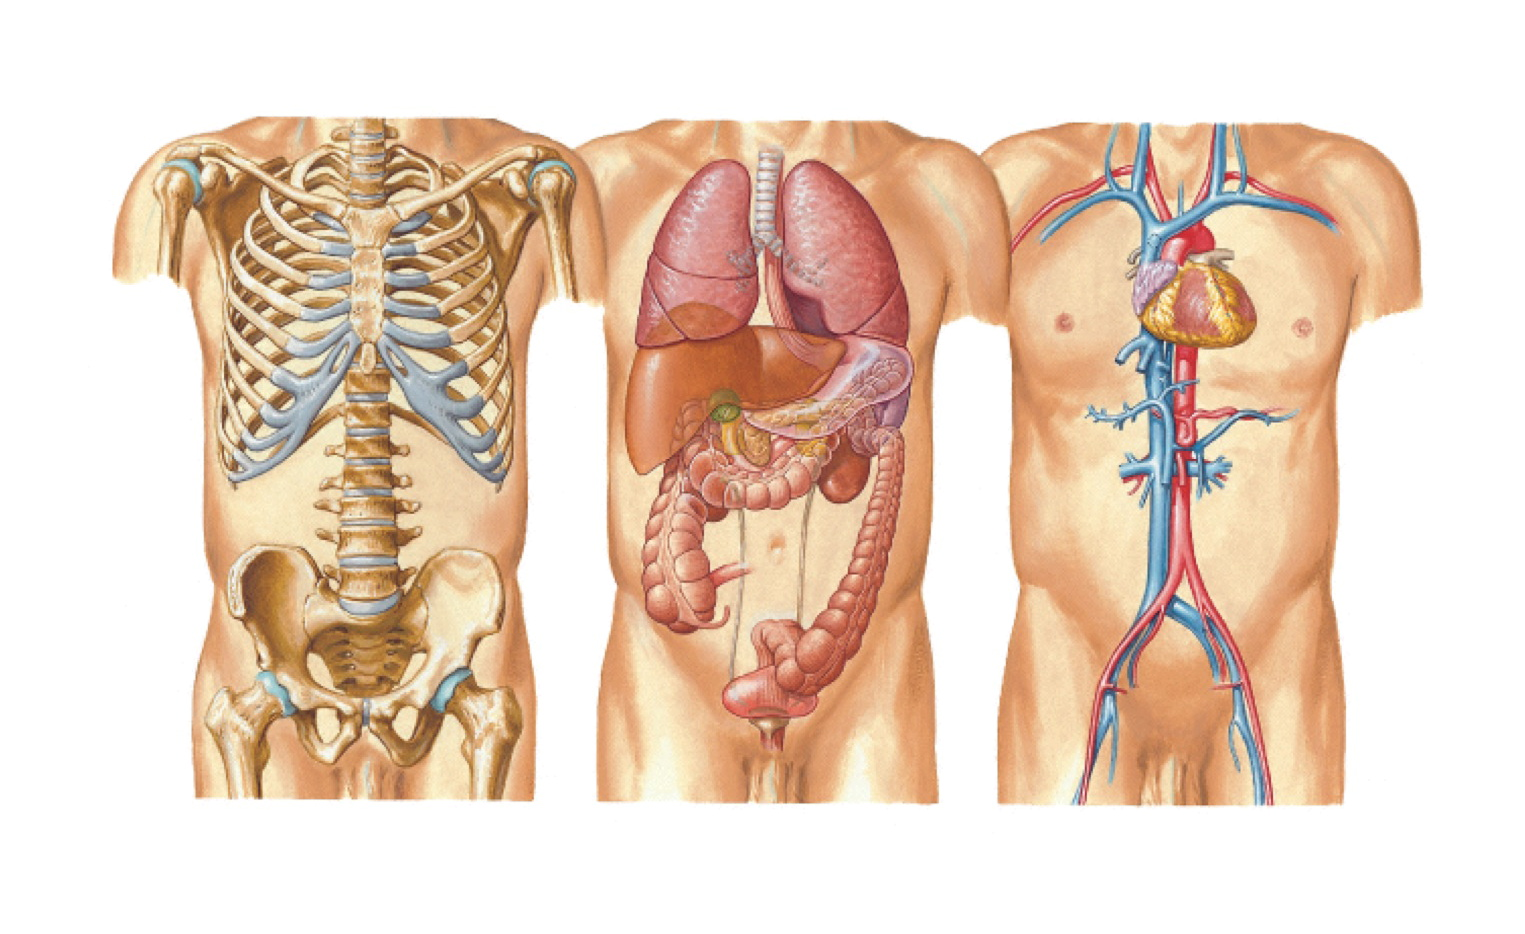 diagram of organs and ribs mustang 3g alternator wiring notes on anatomy physiology the spinal column